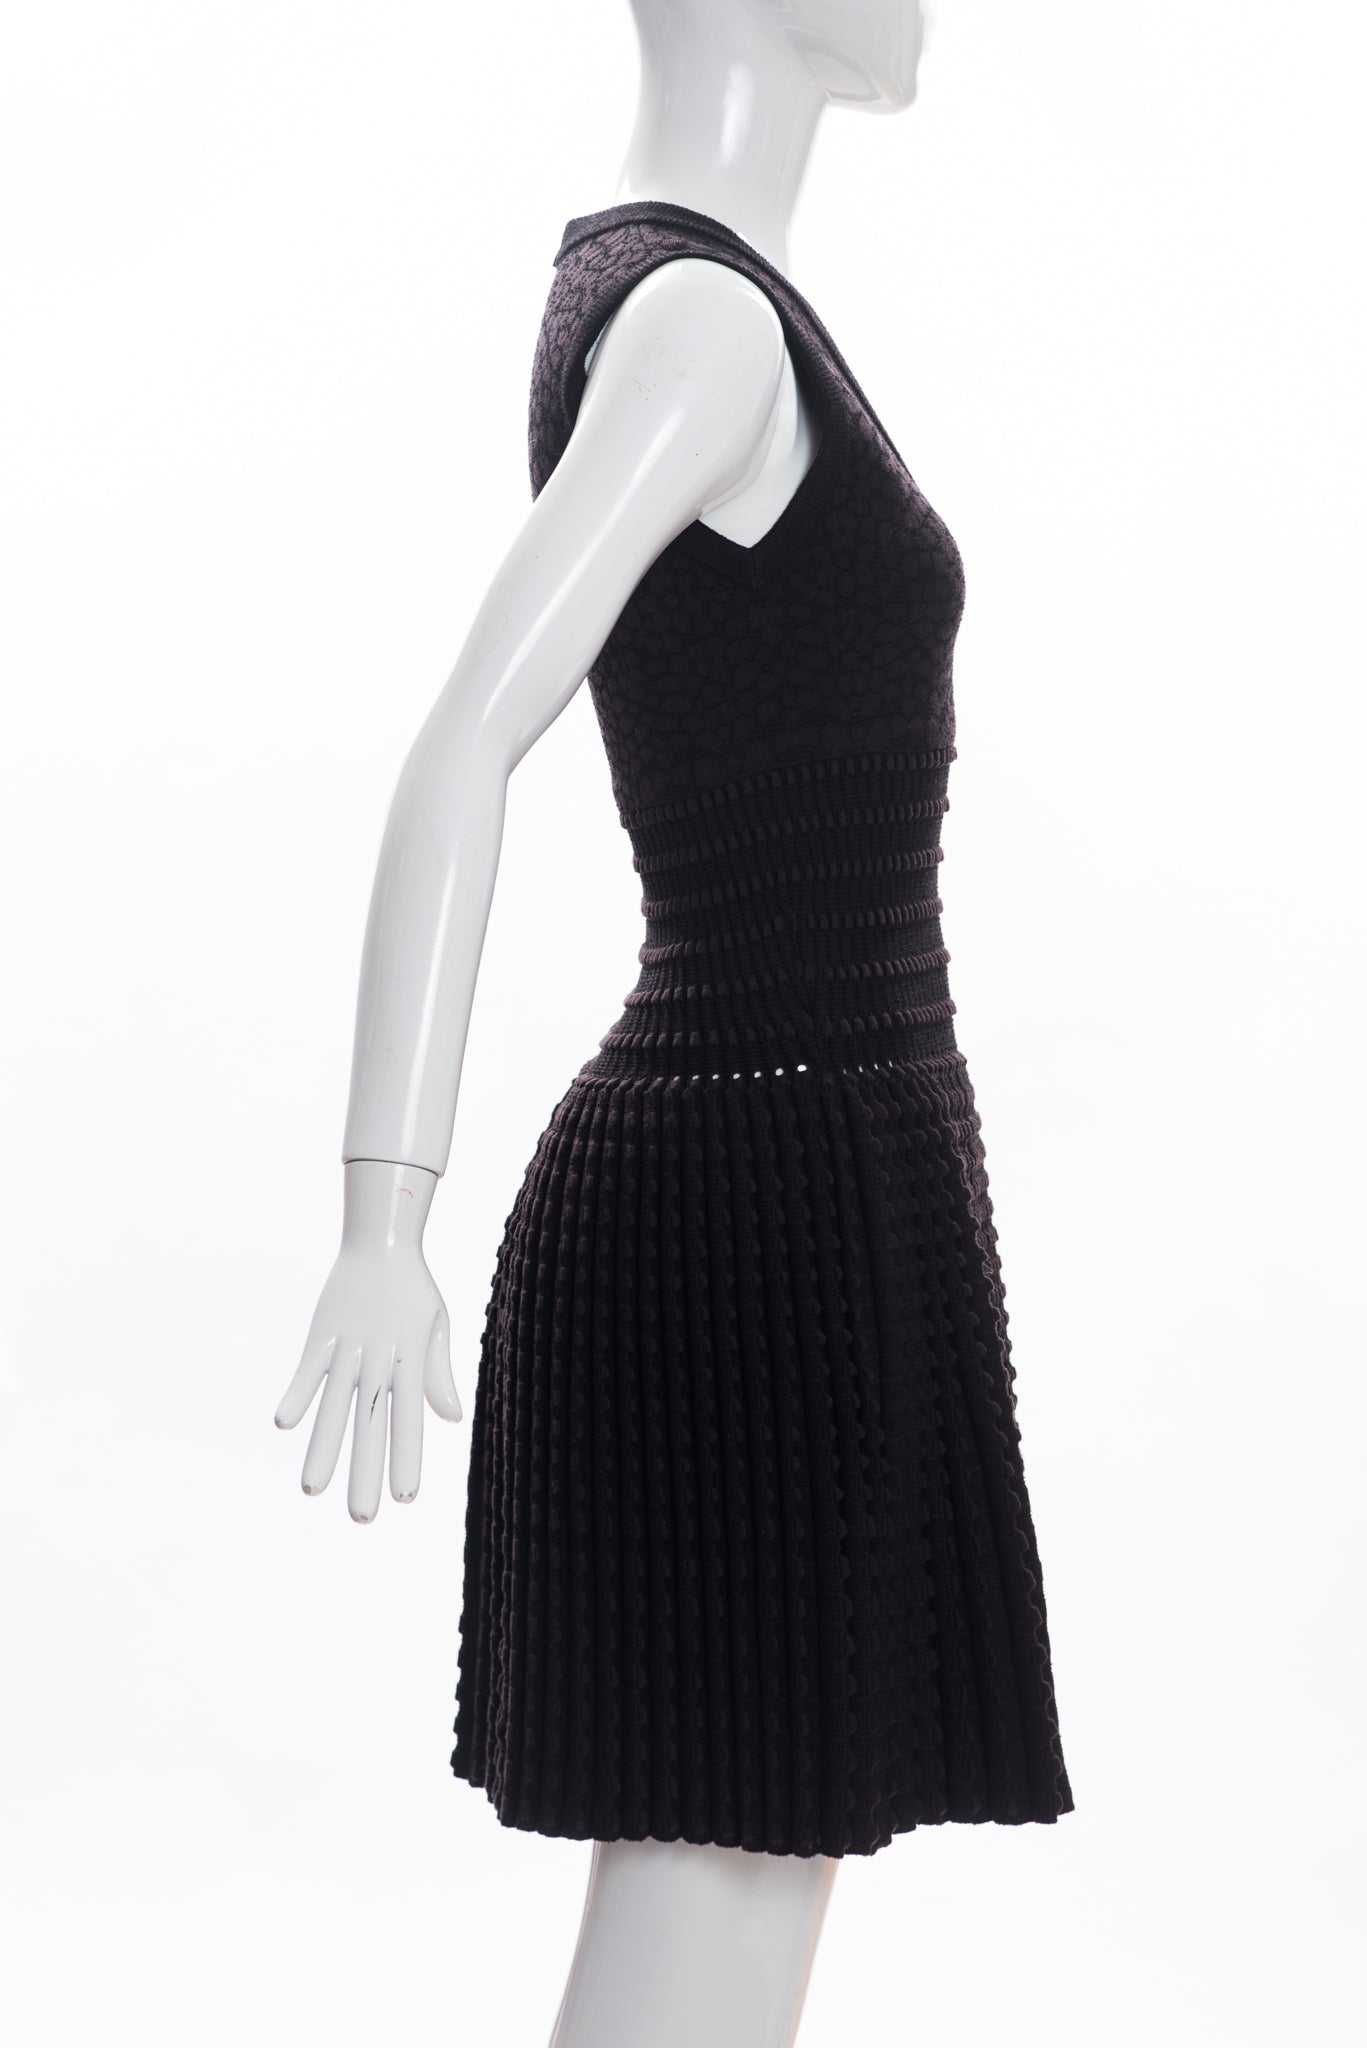 672be2dbdf4 ALAÏA Black Brown Sleeveless V Neck Fit and Flare Fleece Wool Blend Dress 38